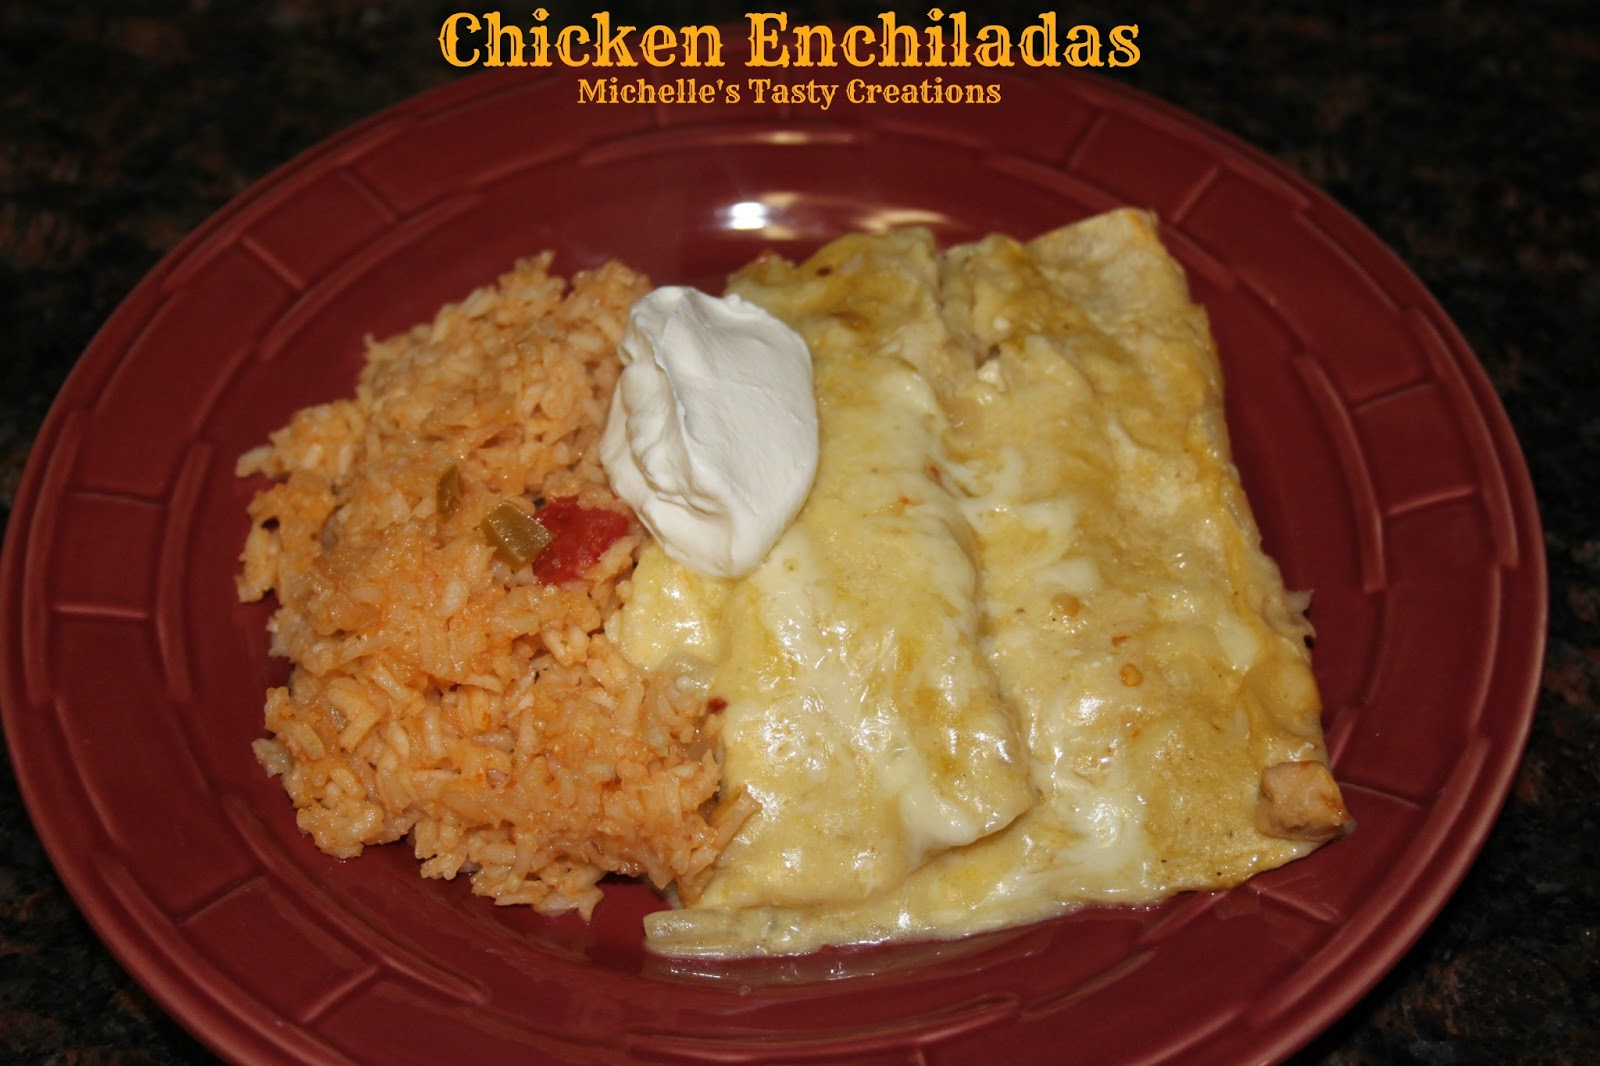 Chicken Enchiladas - All time family favorite meal